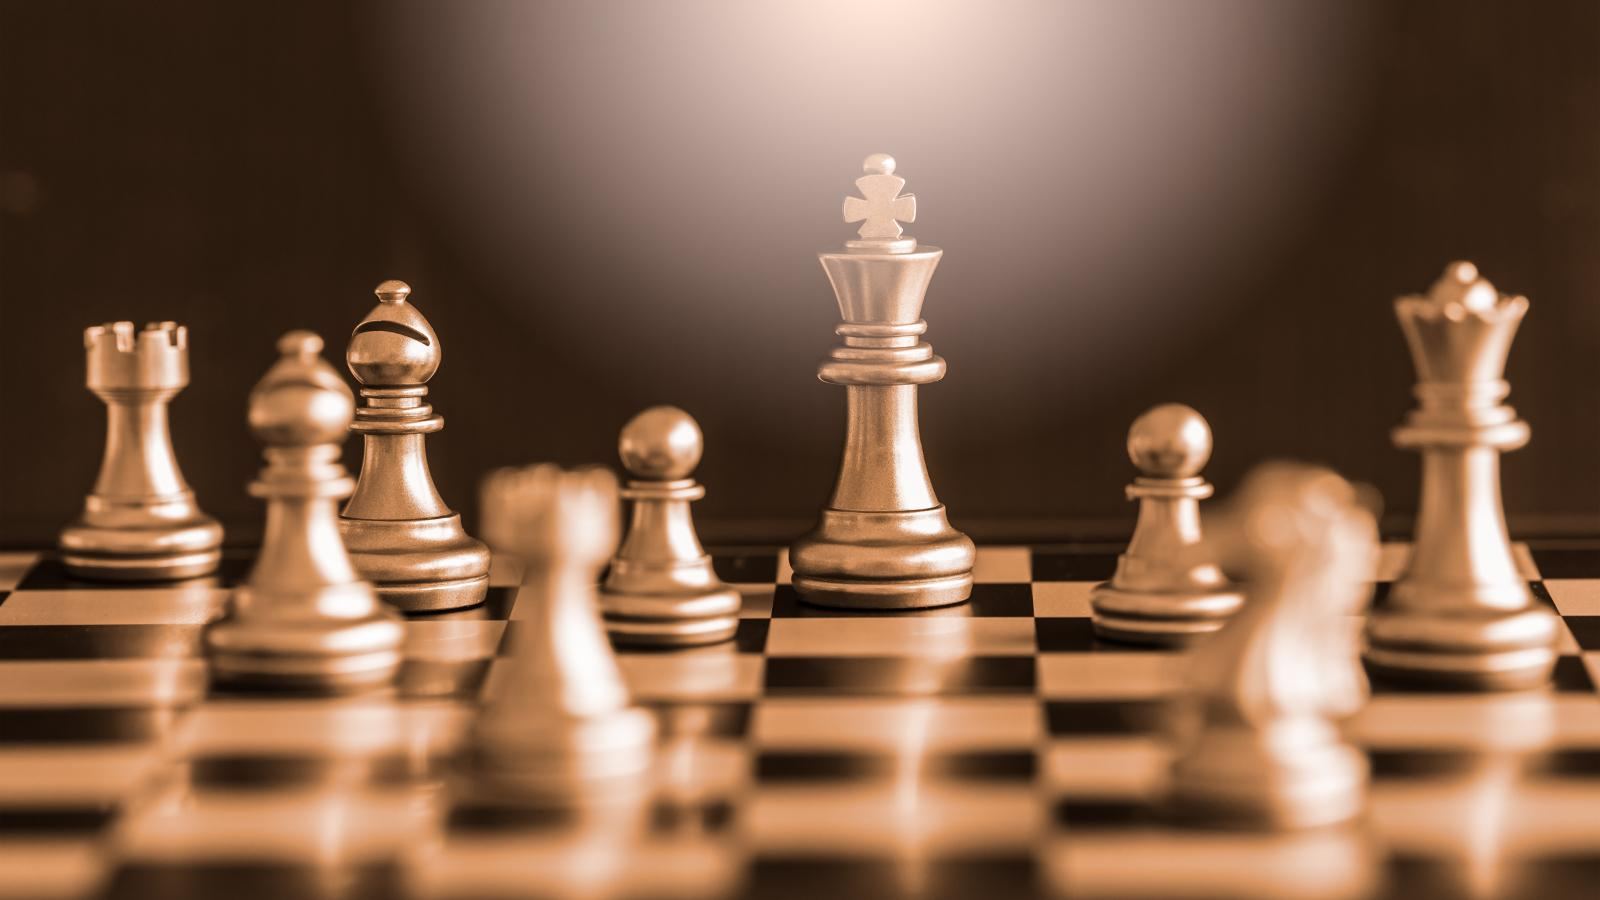 10 best chess games for Android - Android Authority